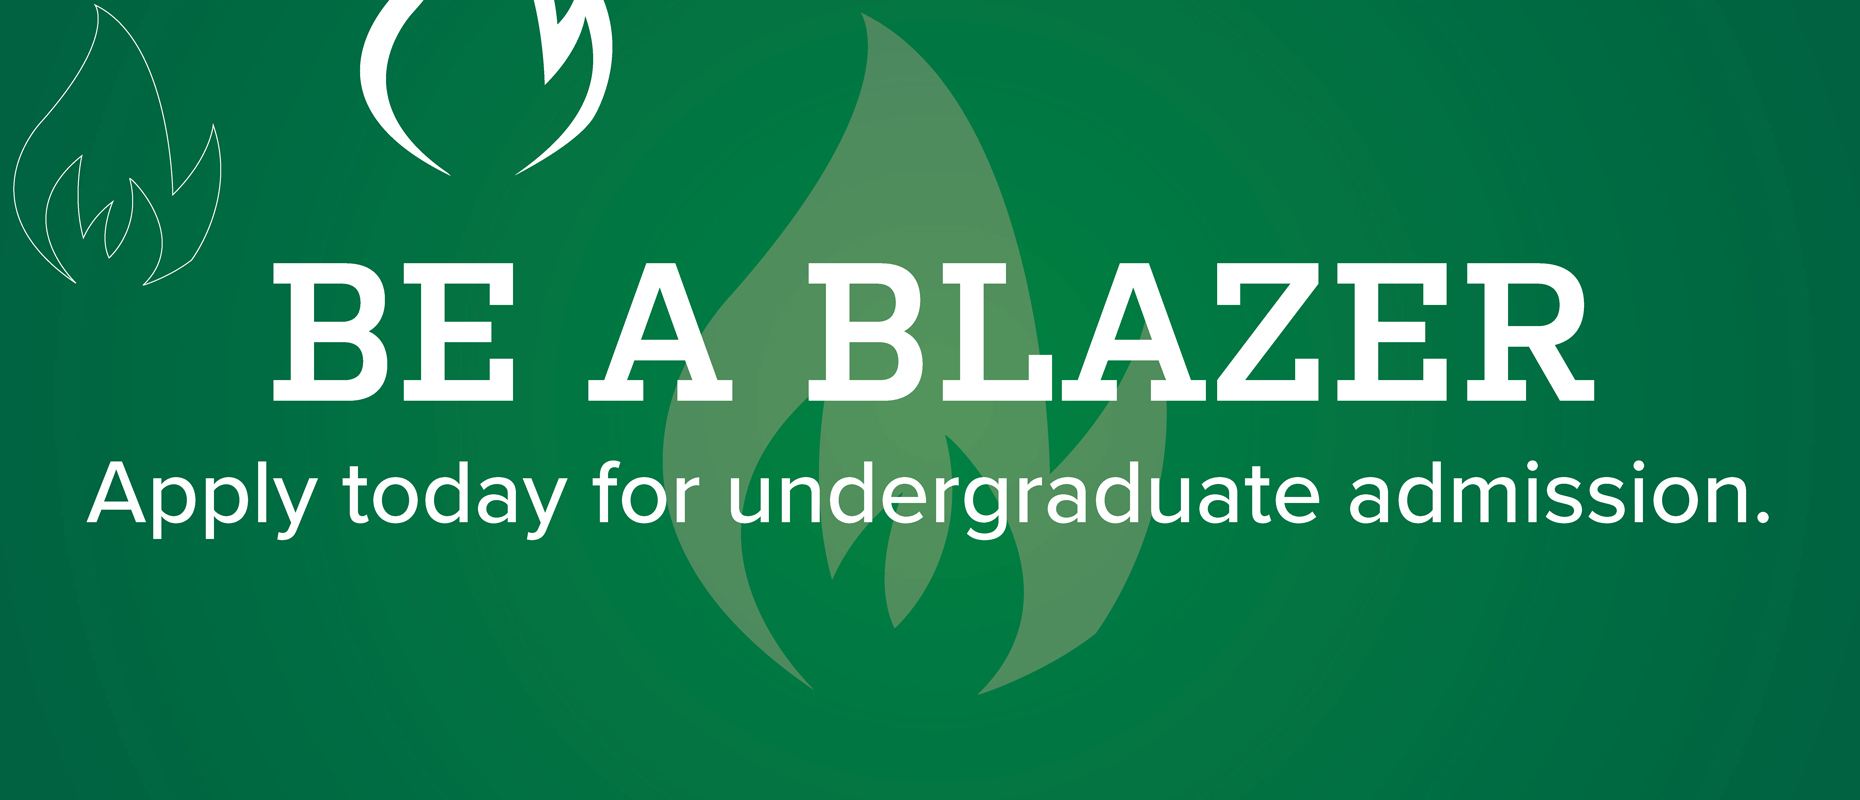 Apply today for UAB undergraduate admission